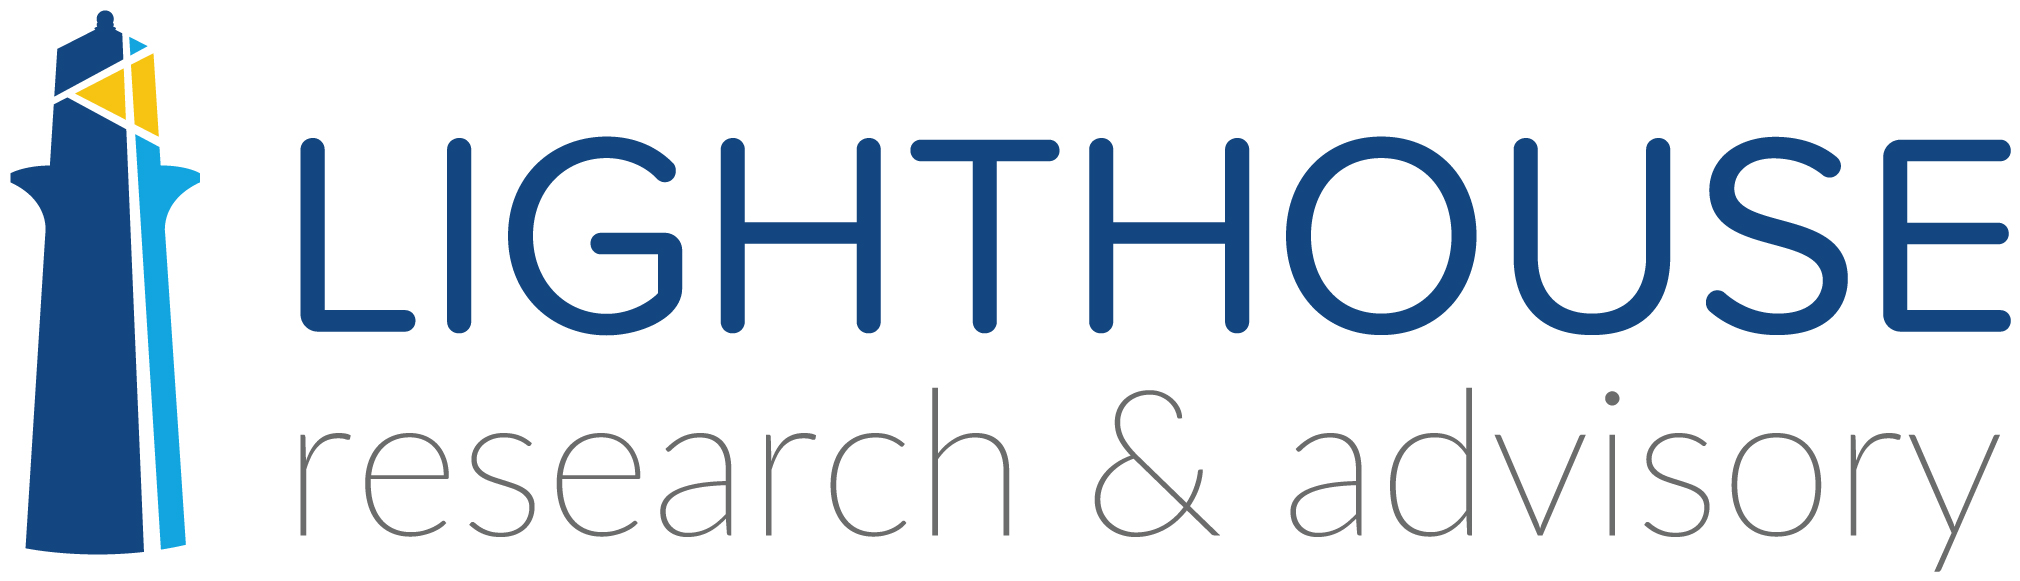 Lighthouse Research & Advisory